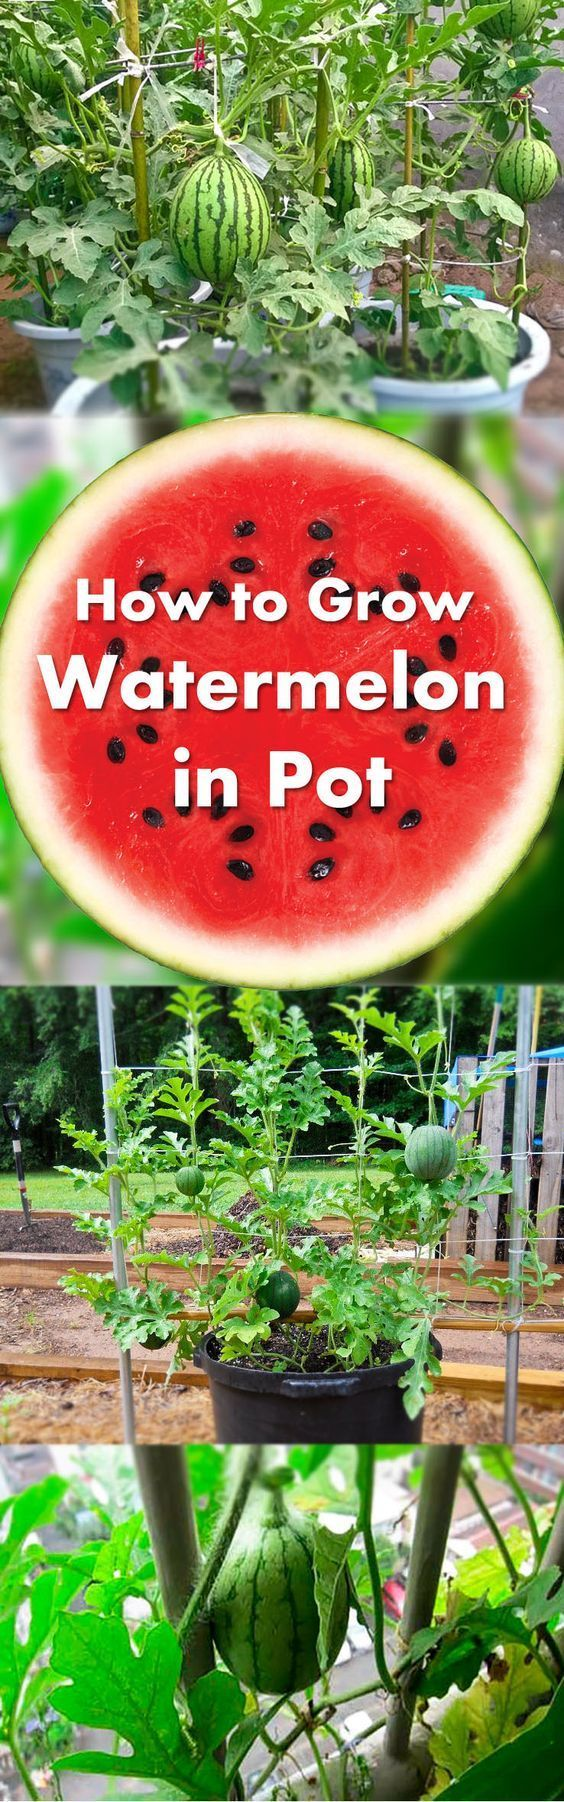 Learn how to grow watermelon in pots. Growing watermelon in containers allow this big, sweet and juicy fruit to grow in smallest of spaces. Interesting gardening  ideas, I would love to grow my own watermelon this summer!